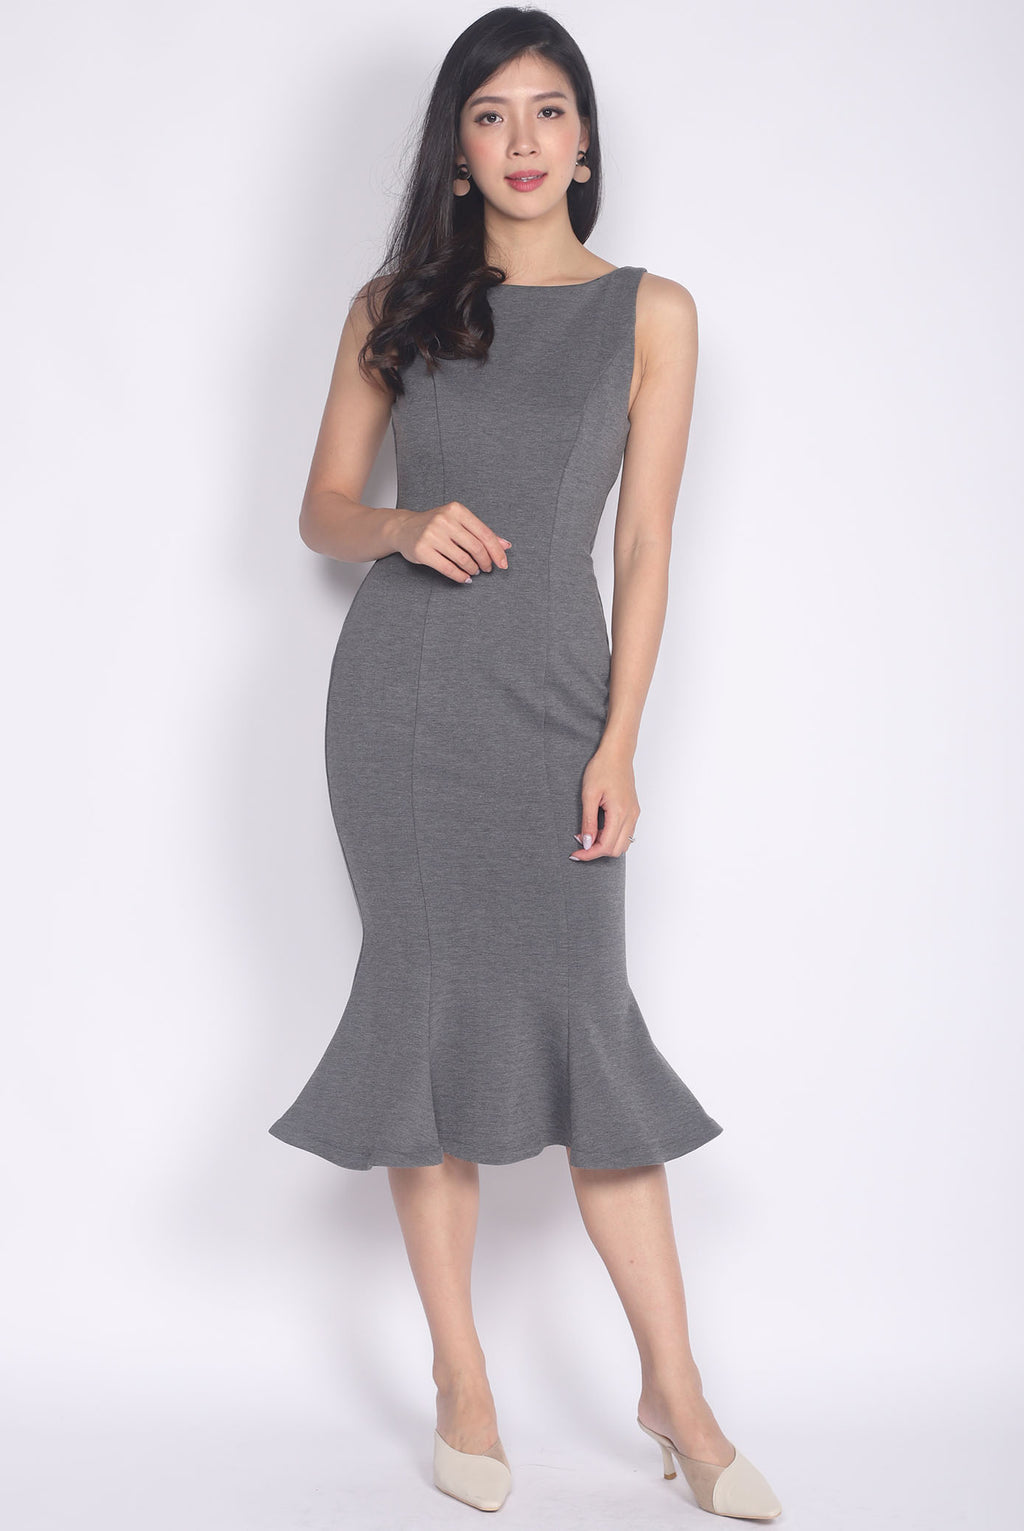 Dinorah Boat Neck Mermaid Dress In Grey